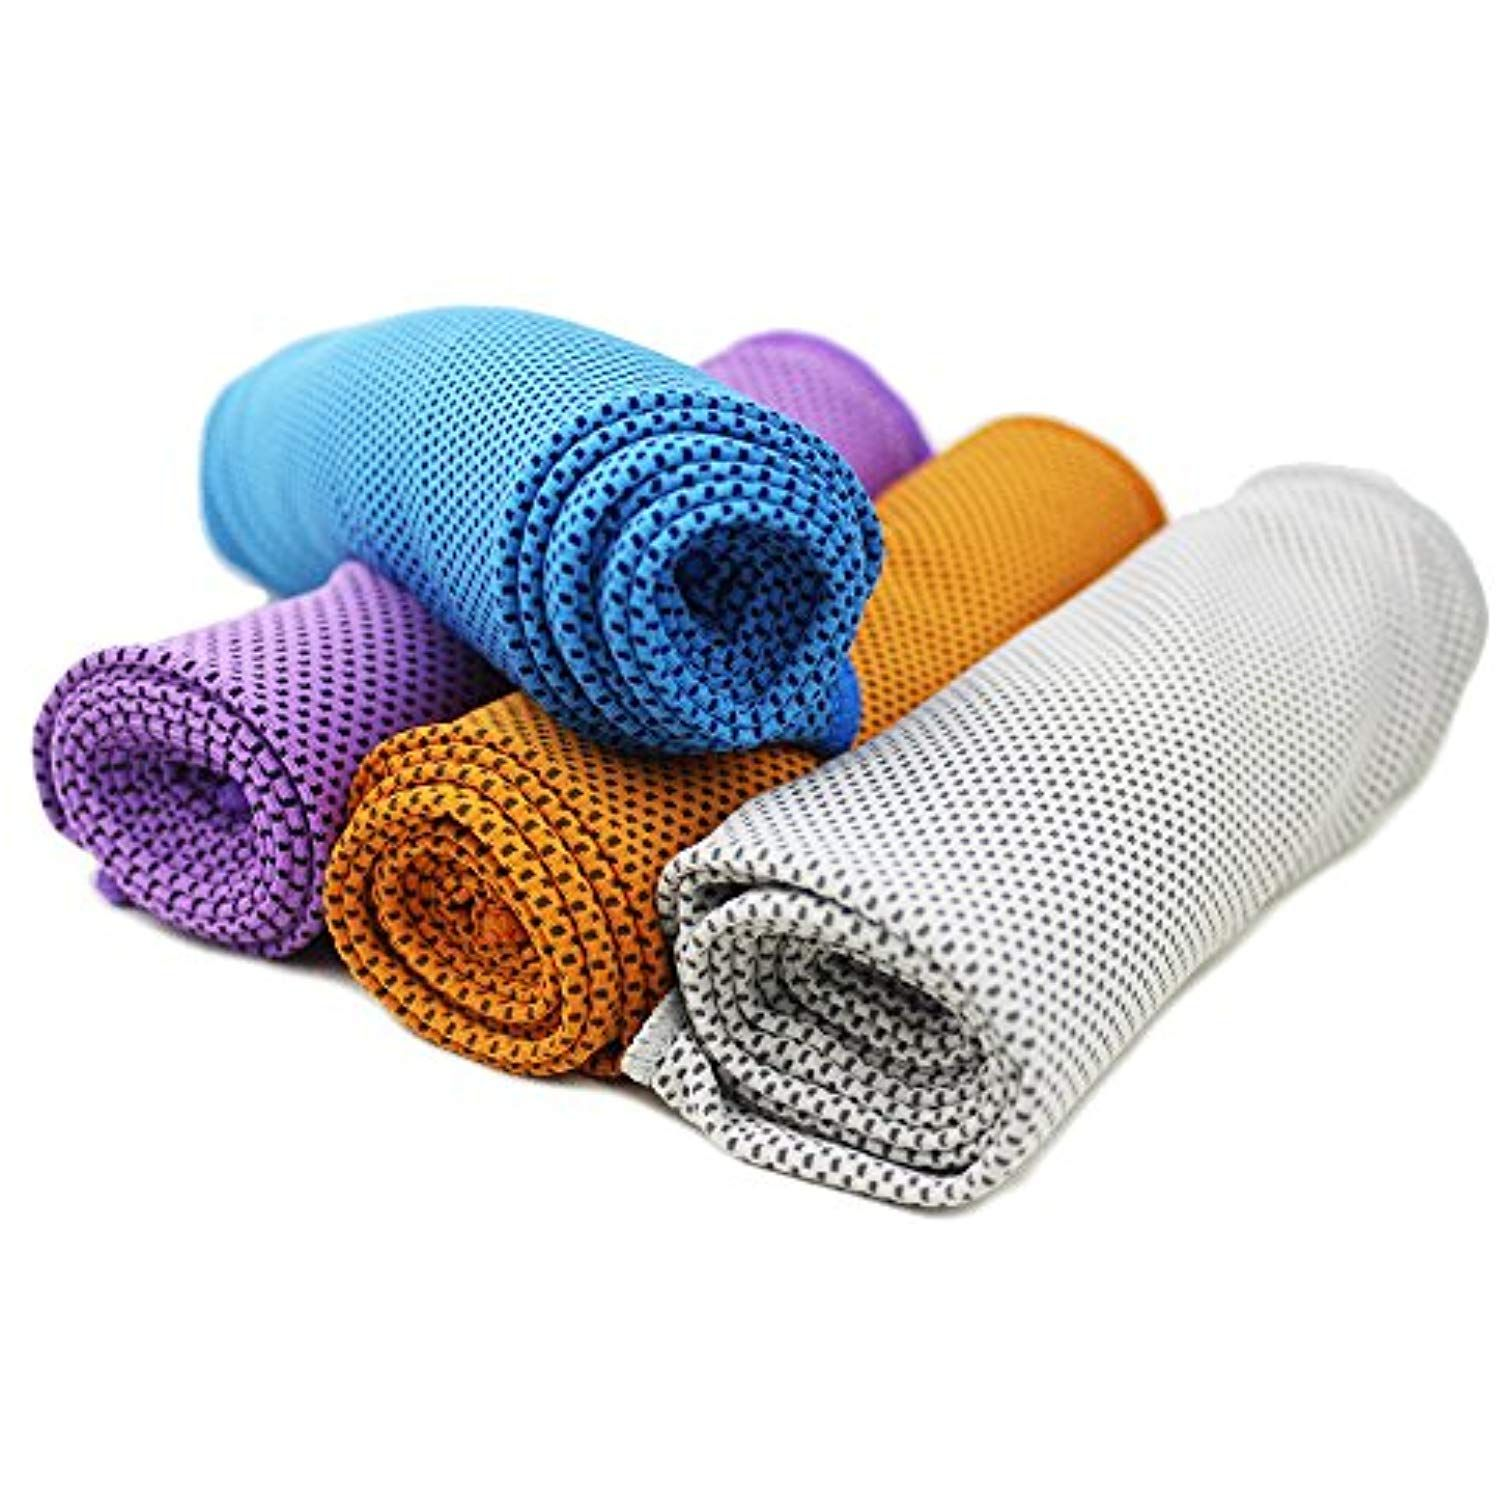 Cooling Towel 4 Packs Magic Ice Towels 40 X12 Snap For Sports Gym Fitness Yoga Traveling Camping And Outdoor